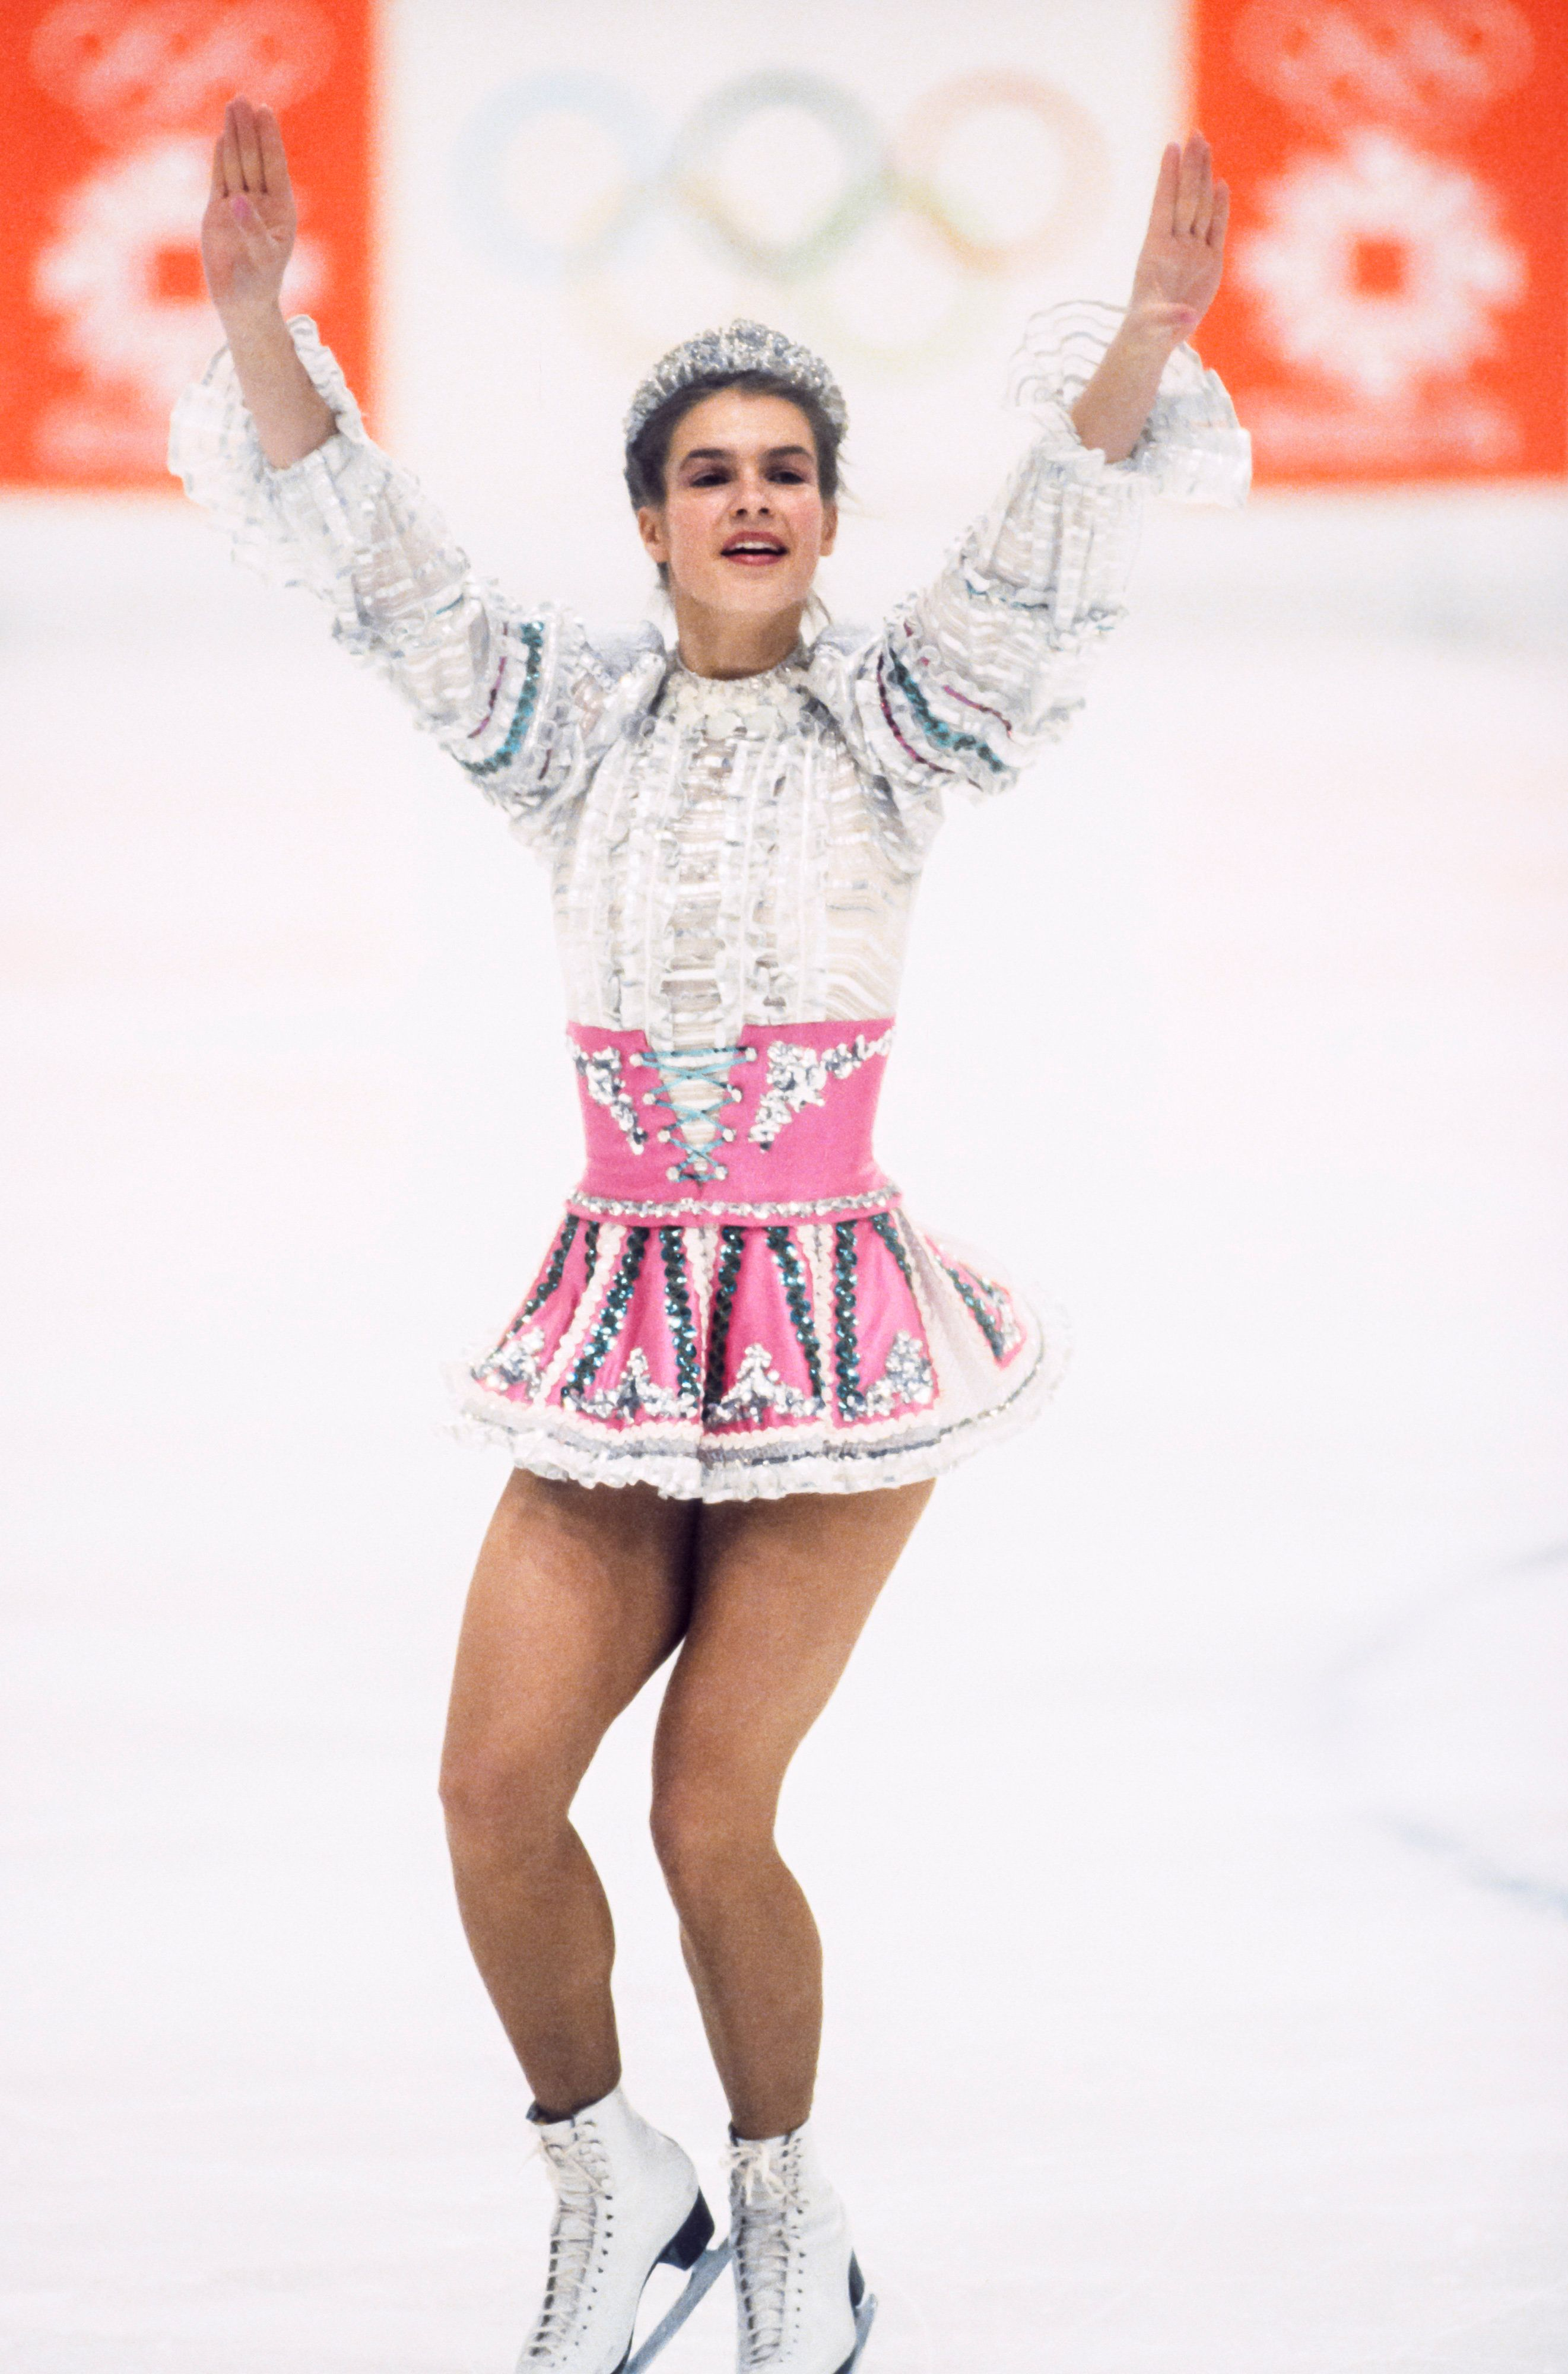 The skater fromEast Germany skating during the 1984 Winter Olympics held in Sarajevo, Yugoslavia, on Feb. 18, 1984.